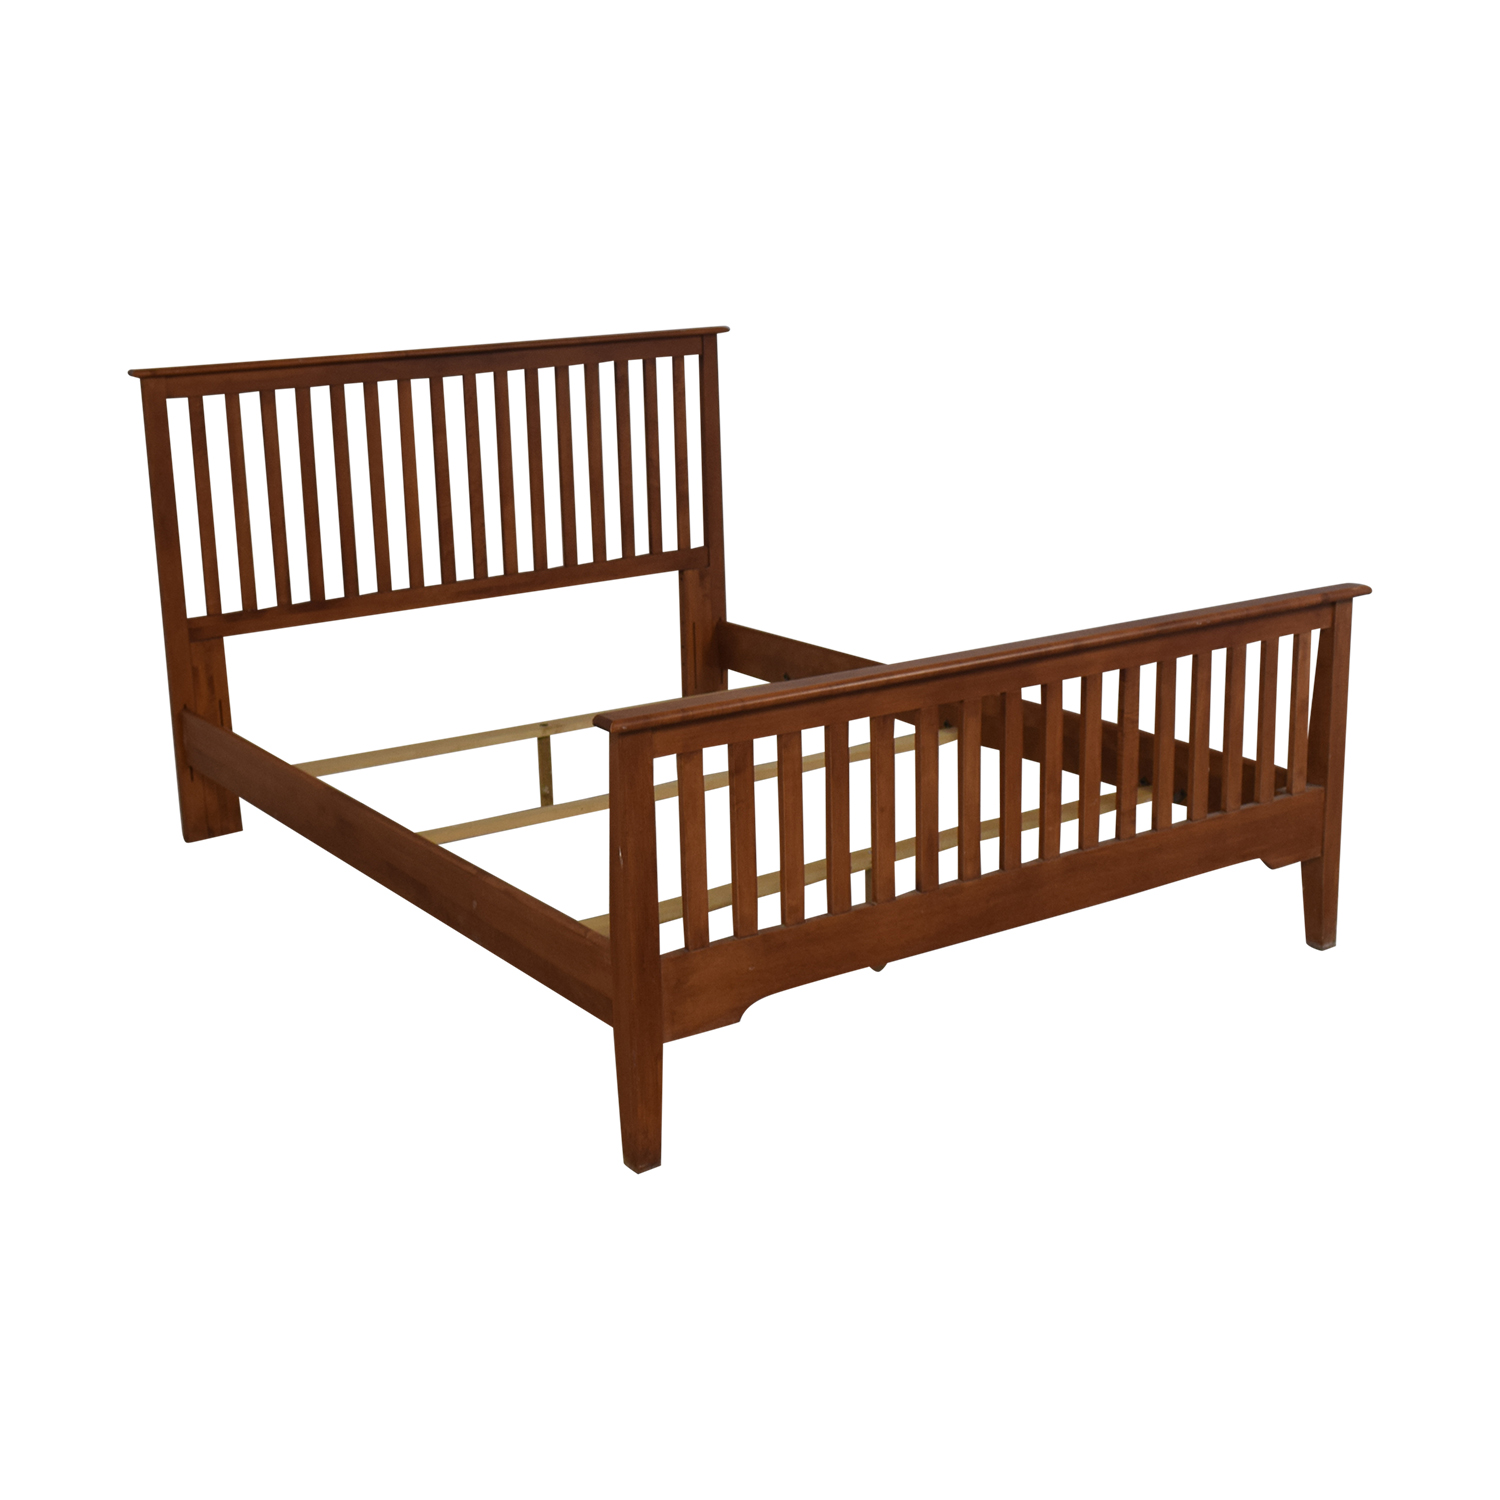 Nadeau Nadeau Mission Style  Full XL to Queen Bed Frame second hand